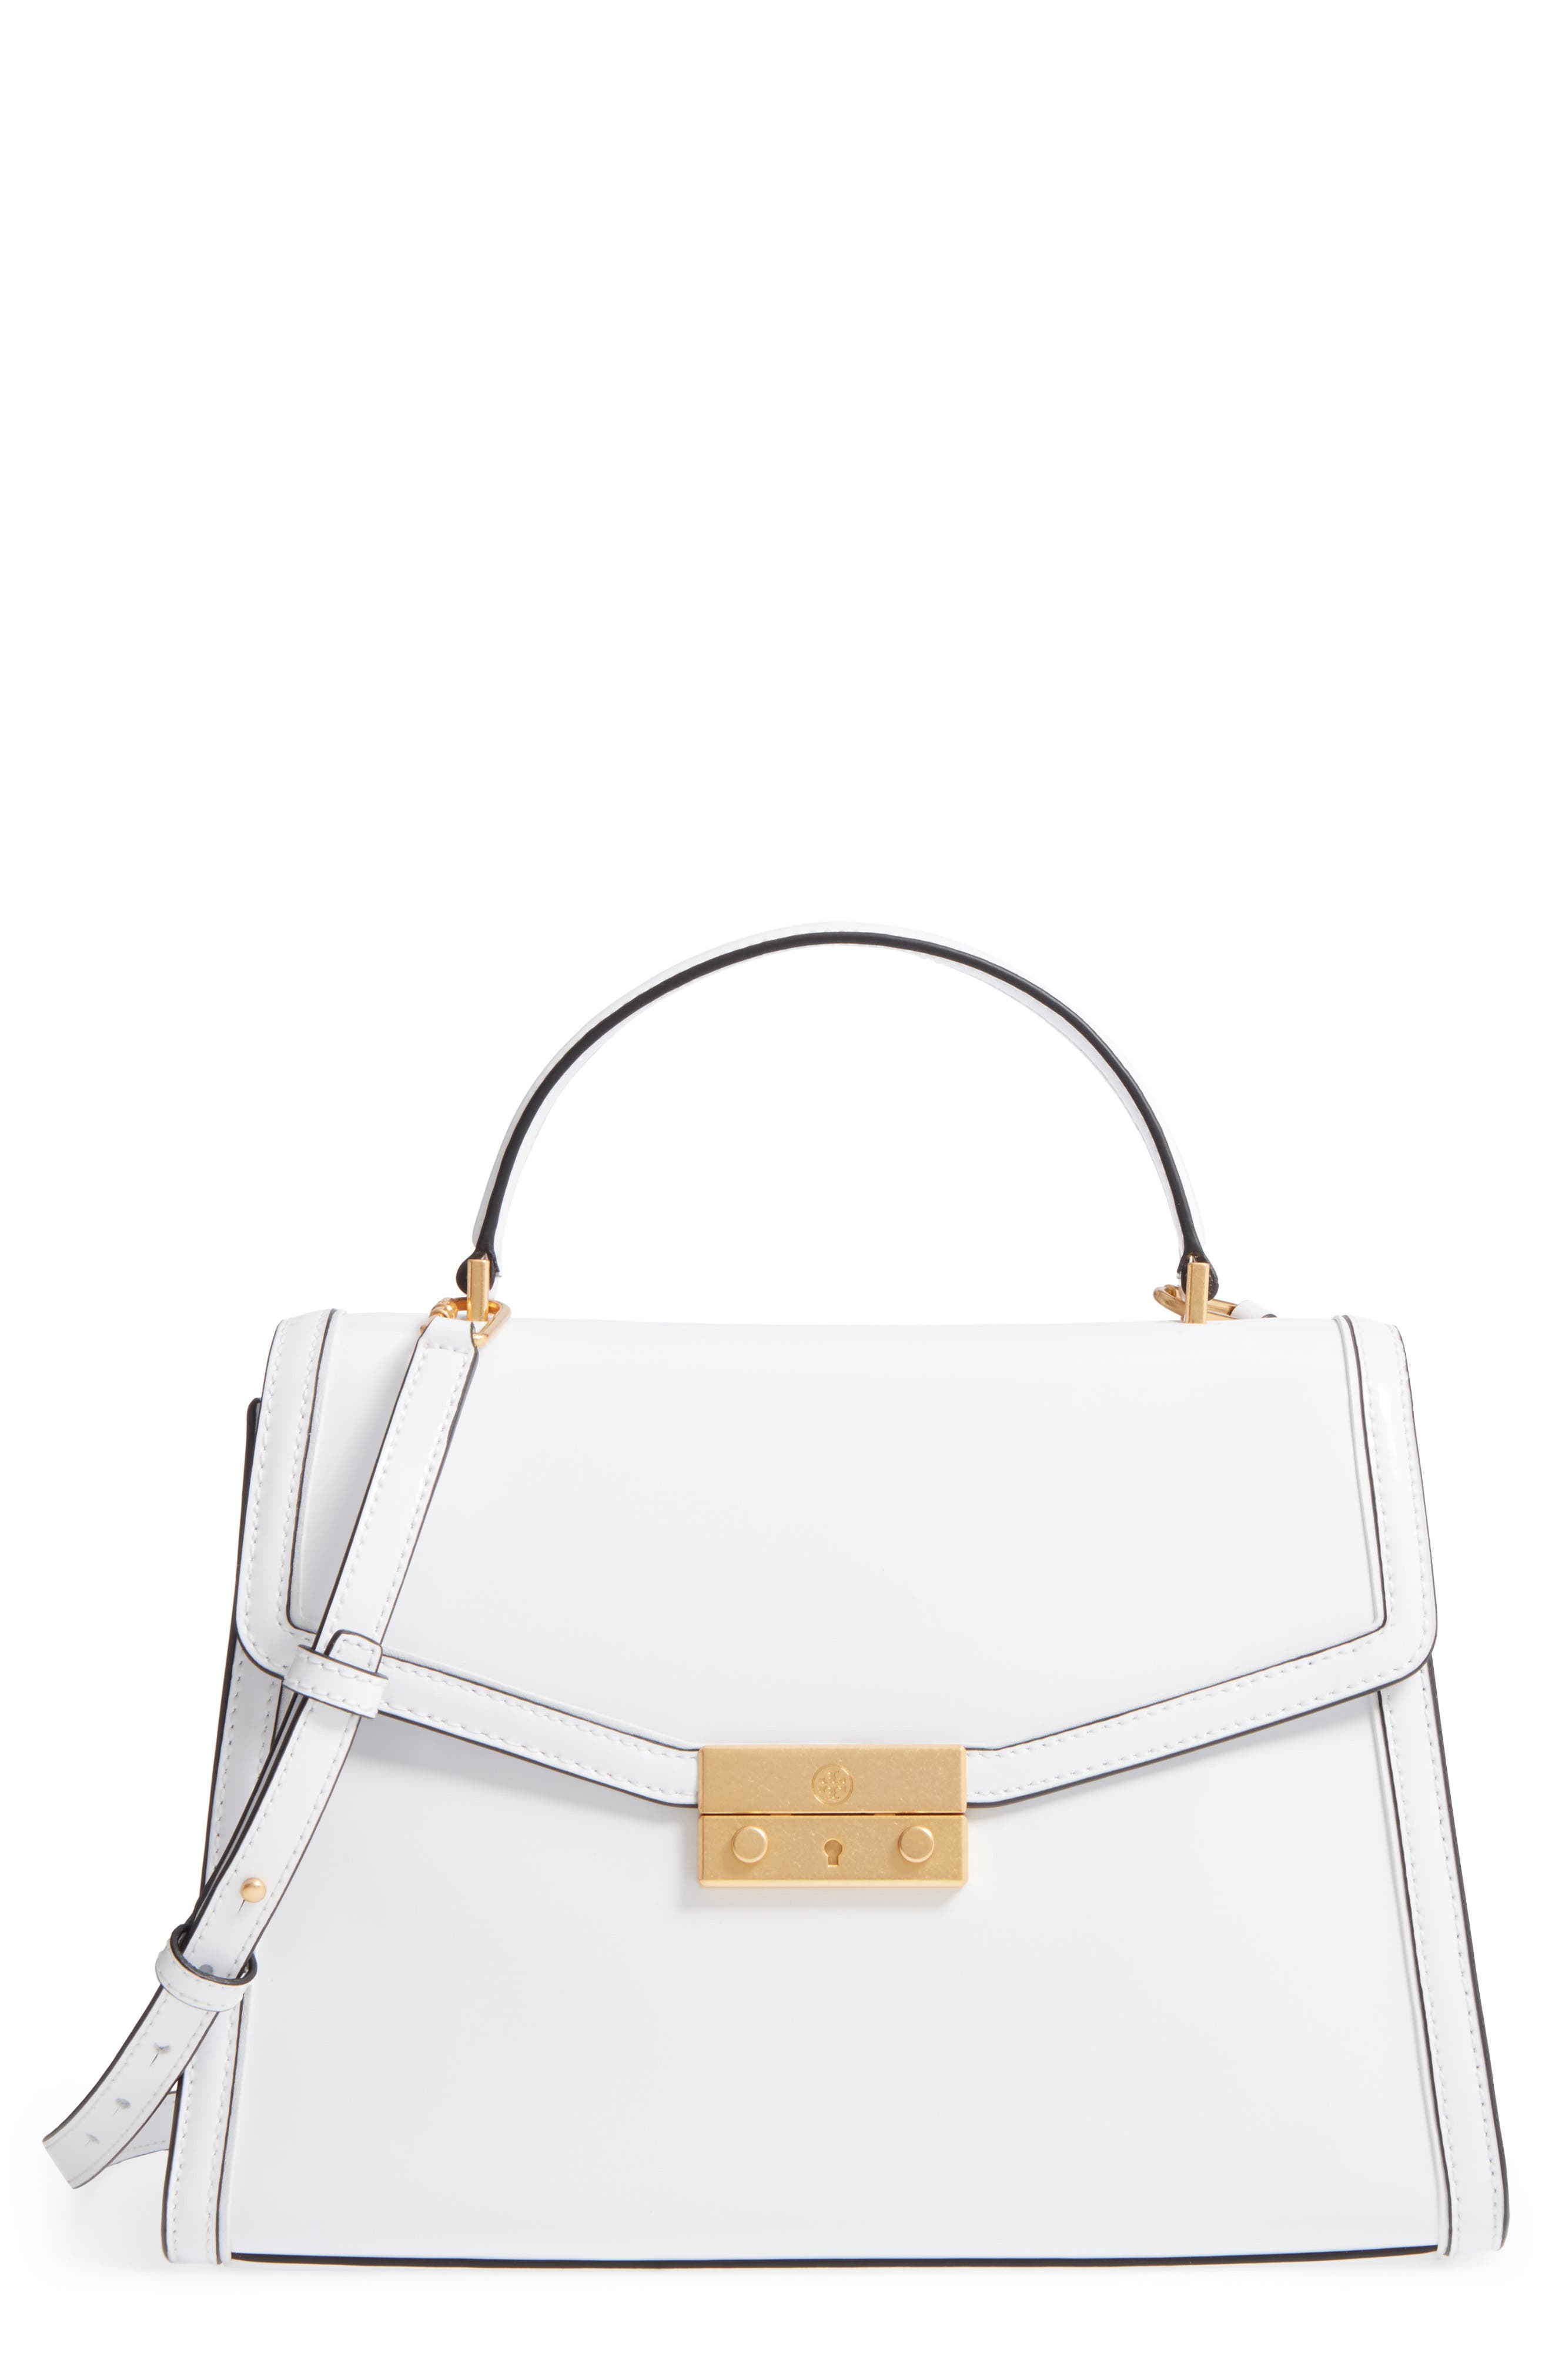 Tory Burch Juliette Leather Satchel